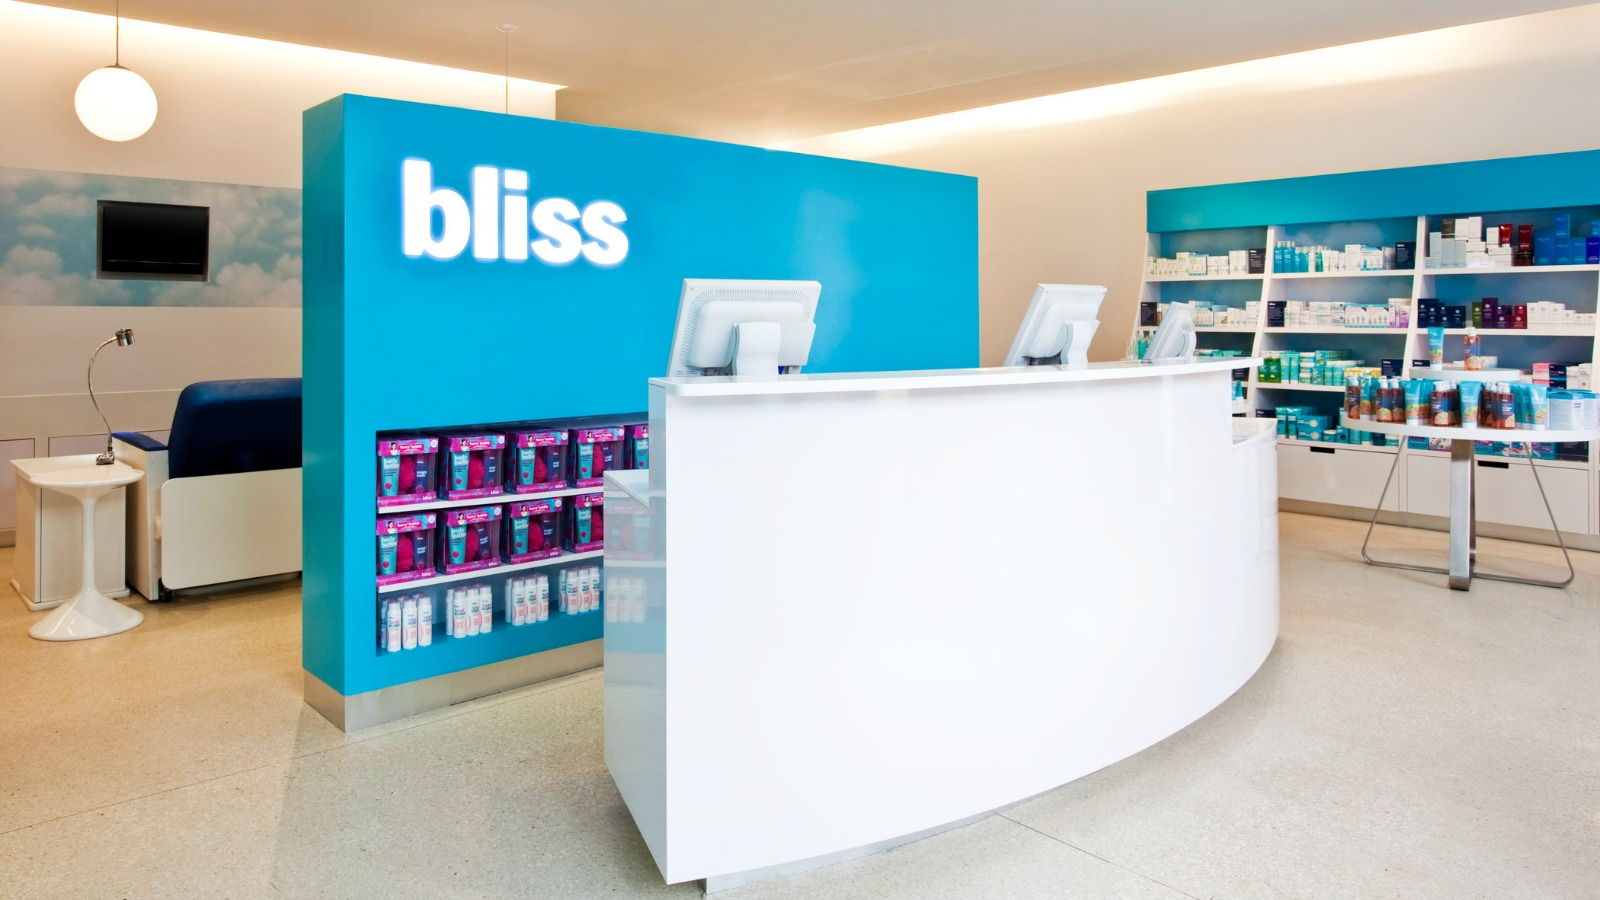 bliss® 49 Spa | W New York